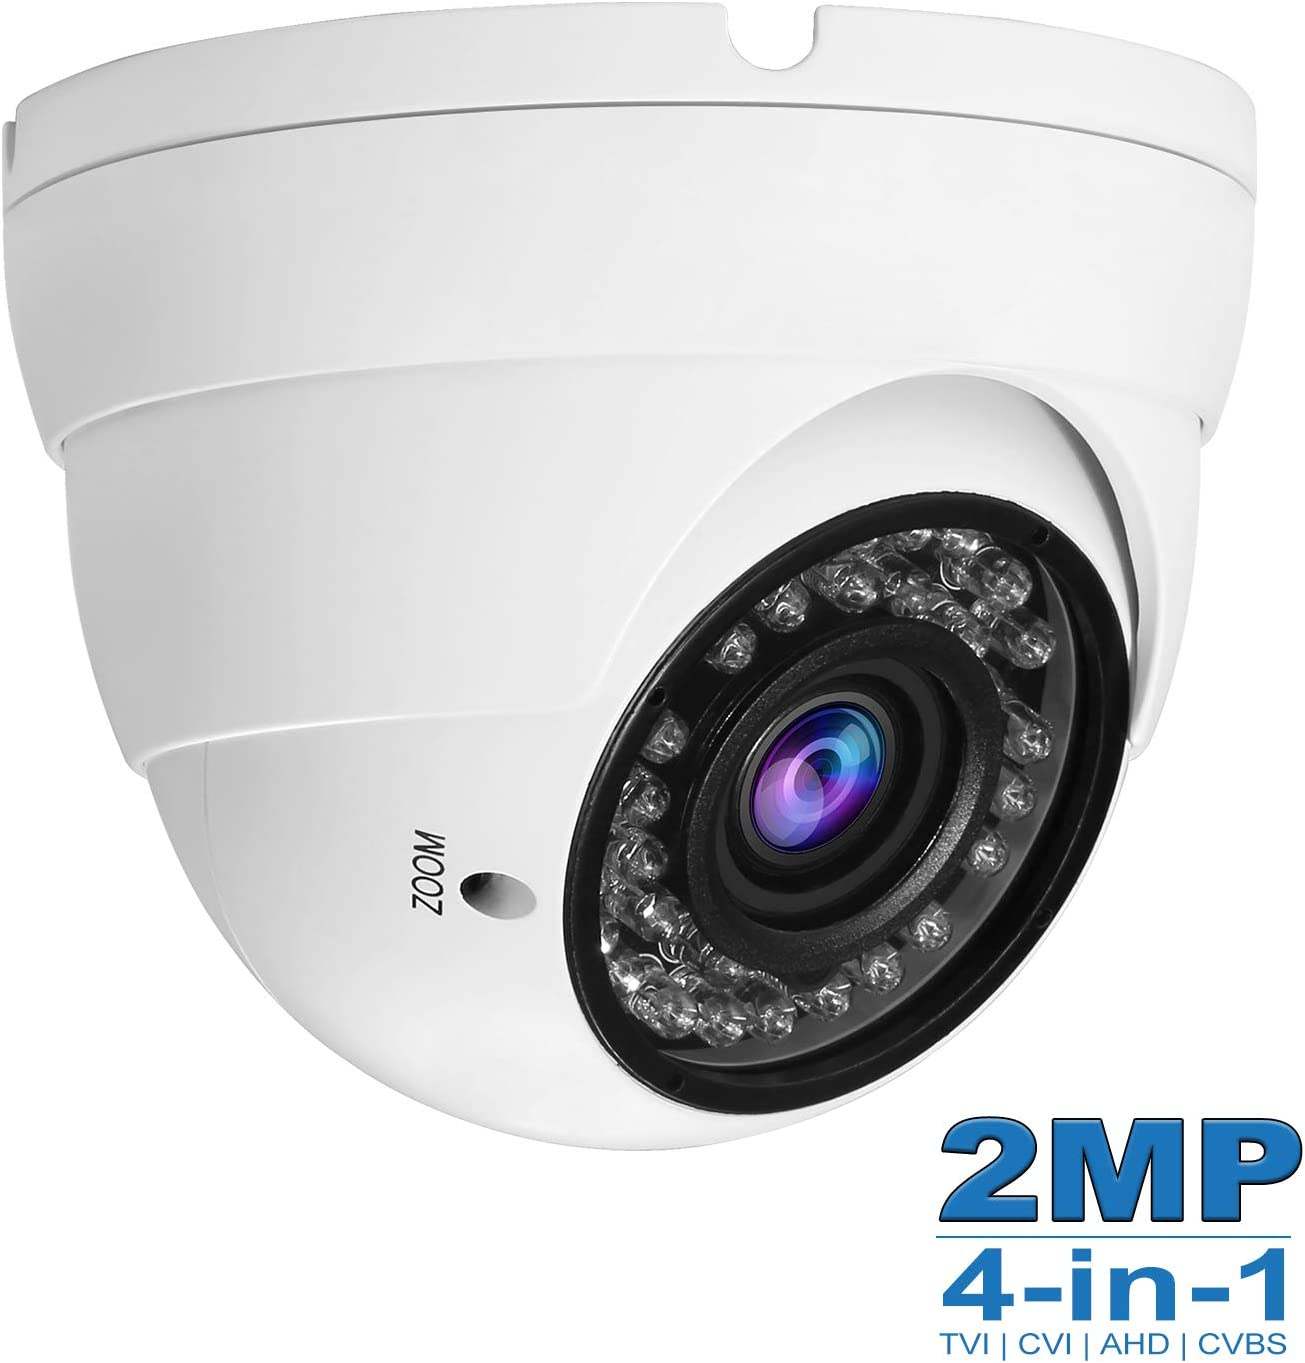 HD-TVI 1080p HD 2.4MP IR Dome Camera 2.8mm Lens Wide Angle Infrared Night Vision